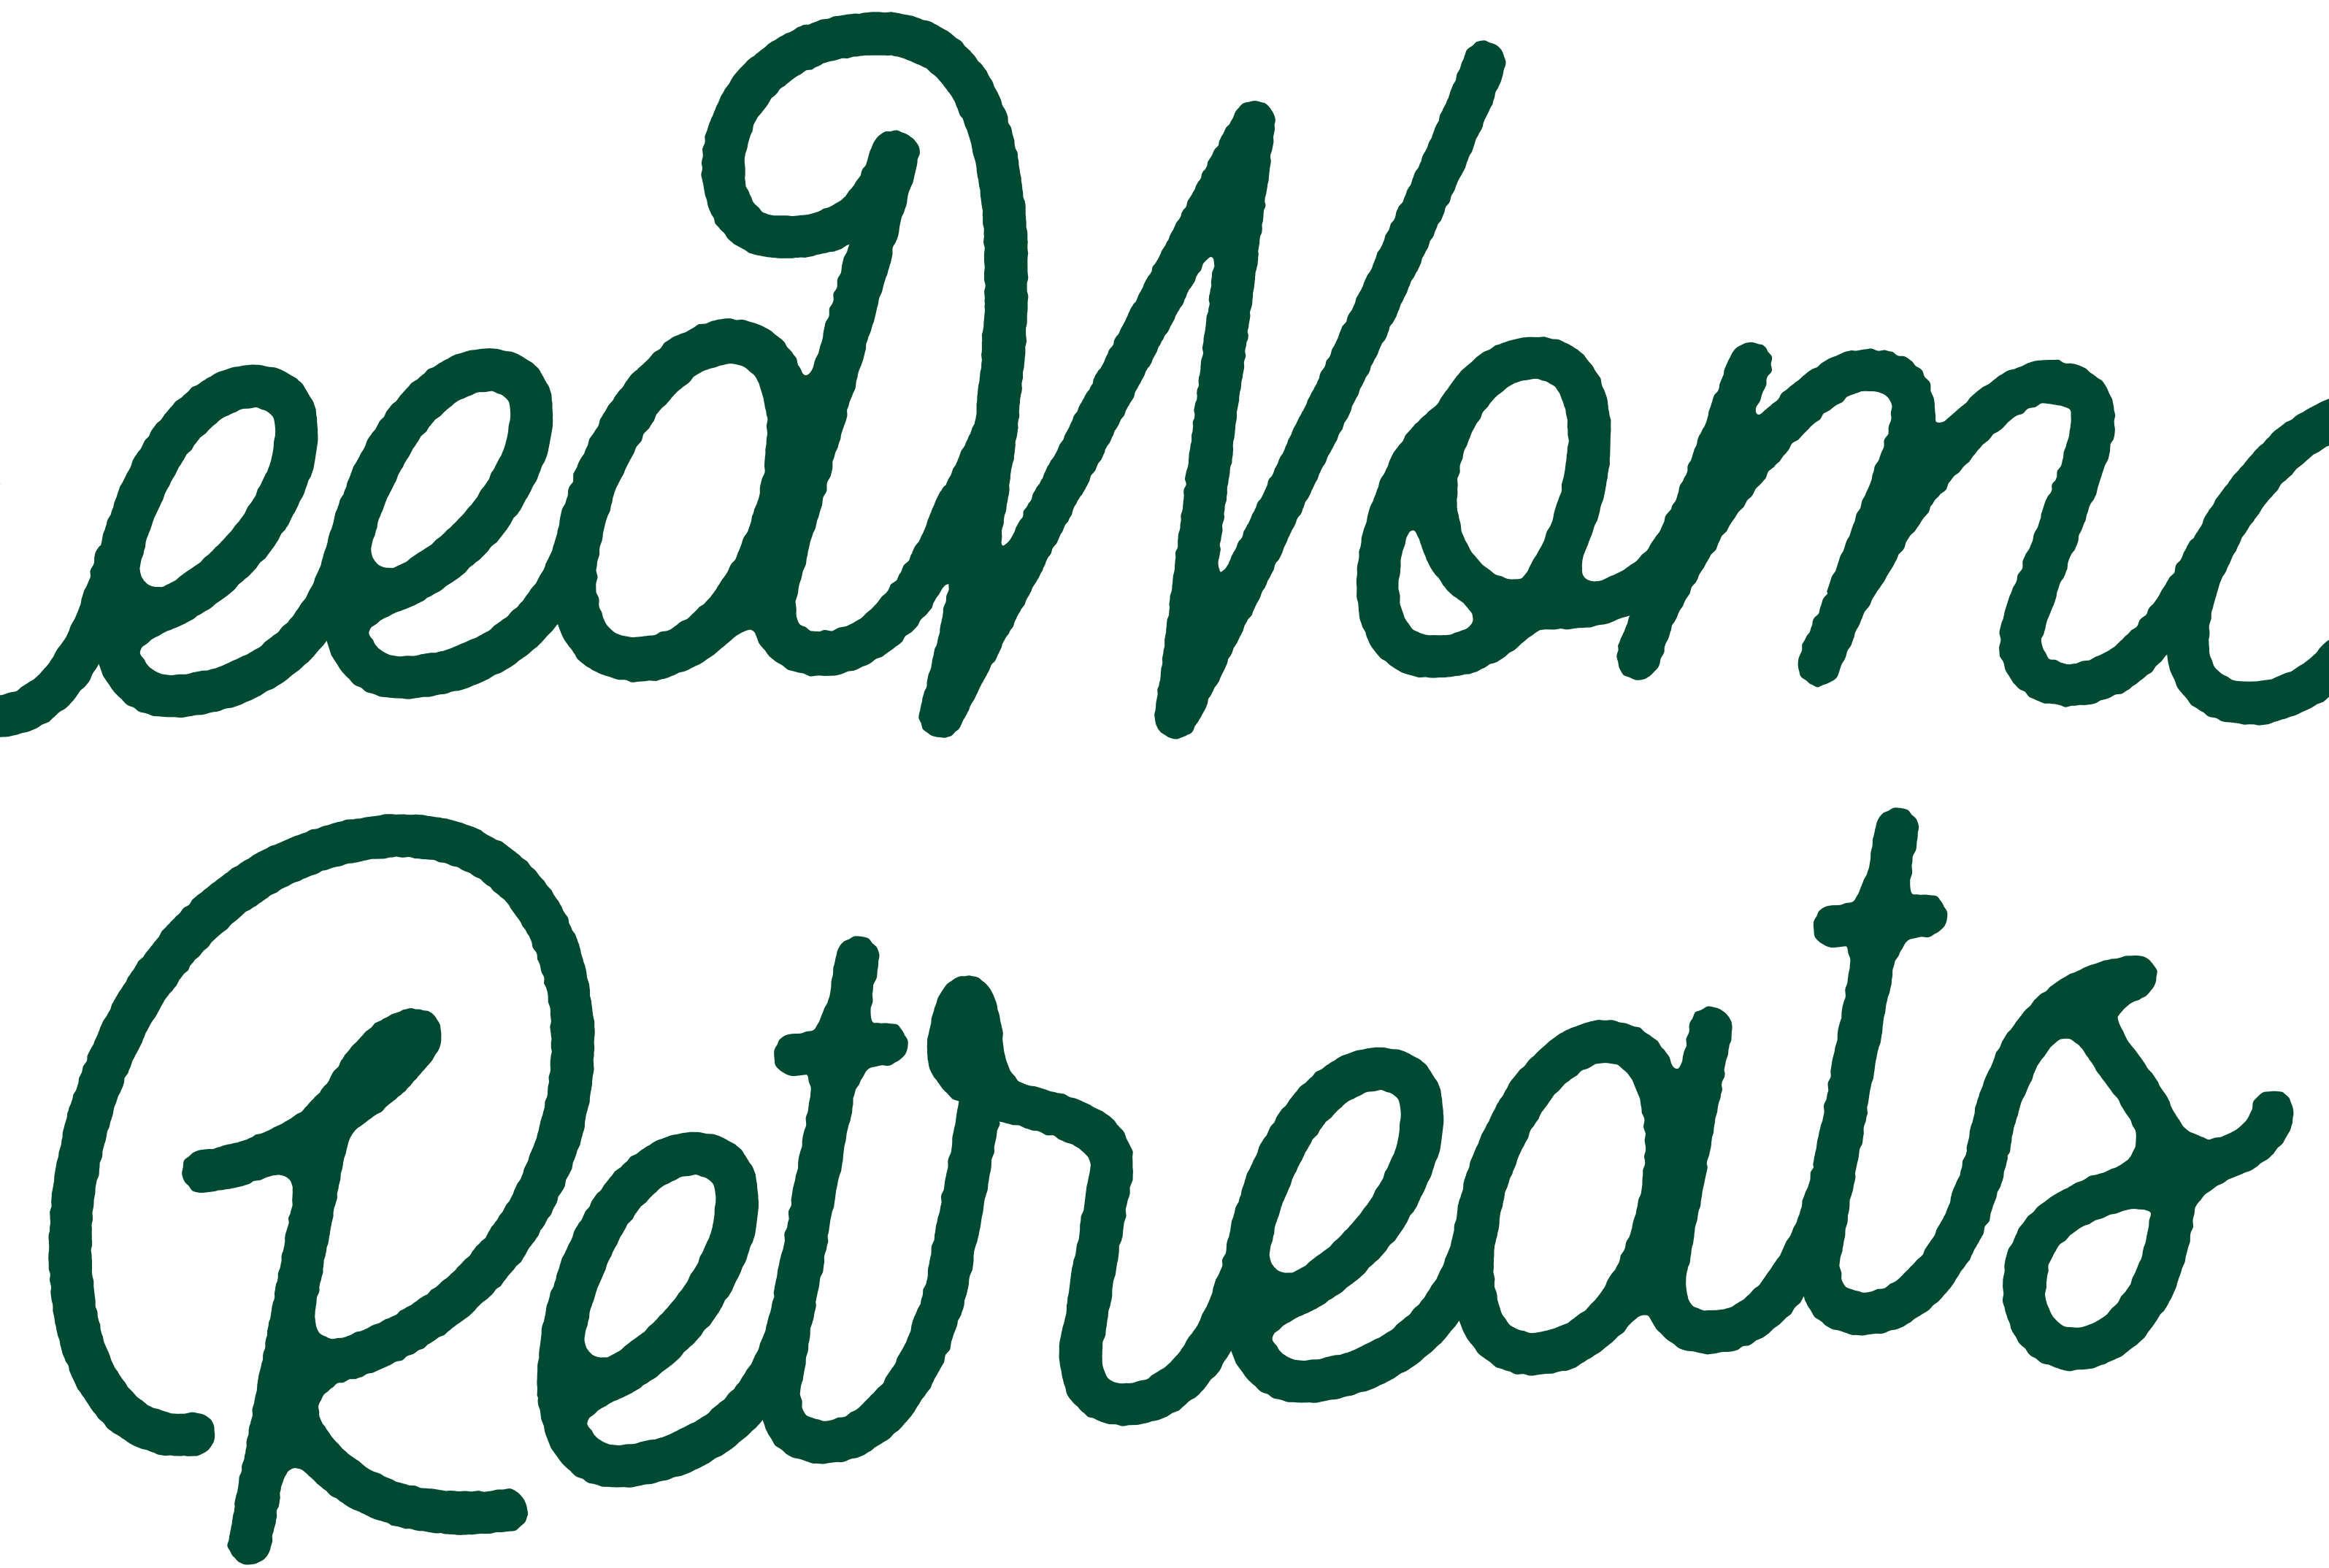 Freedwoman Retreats Logo